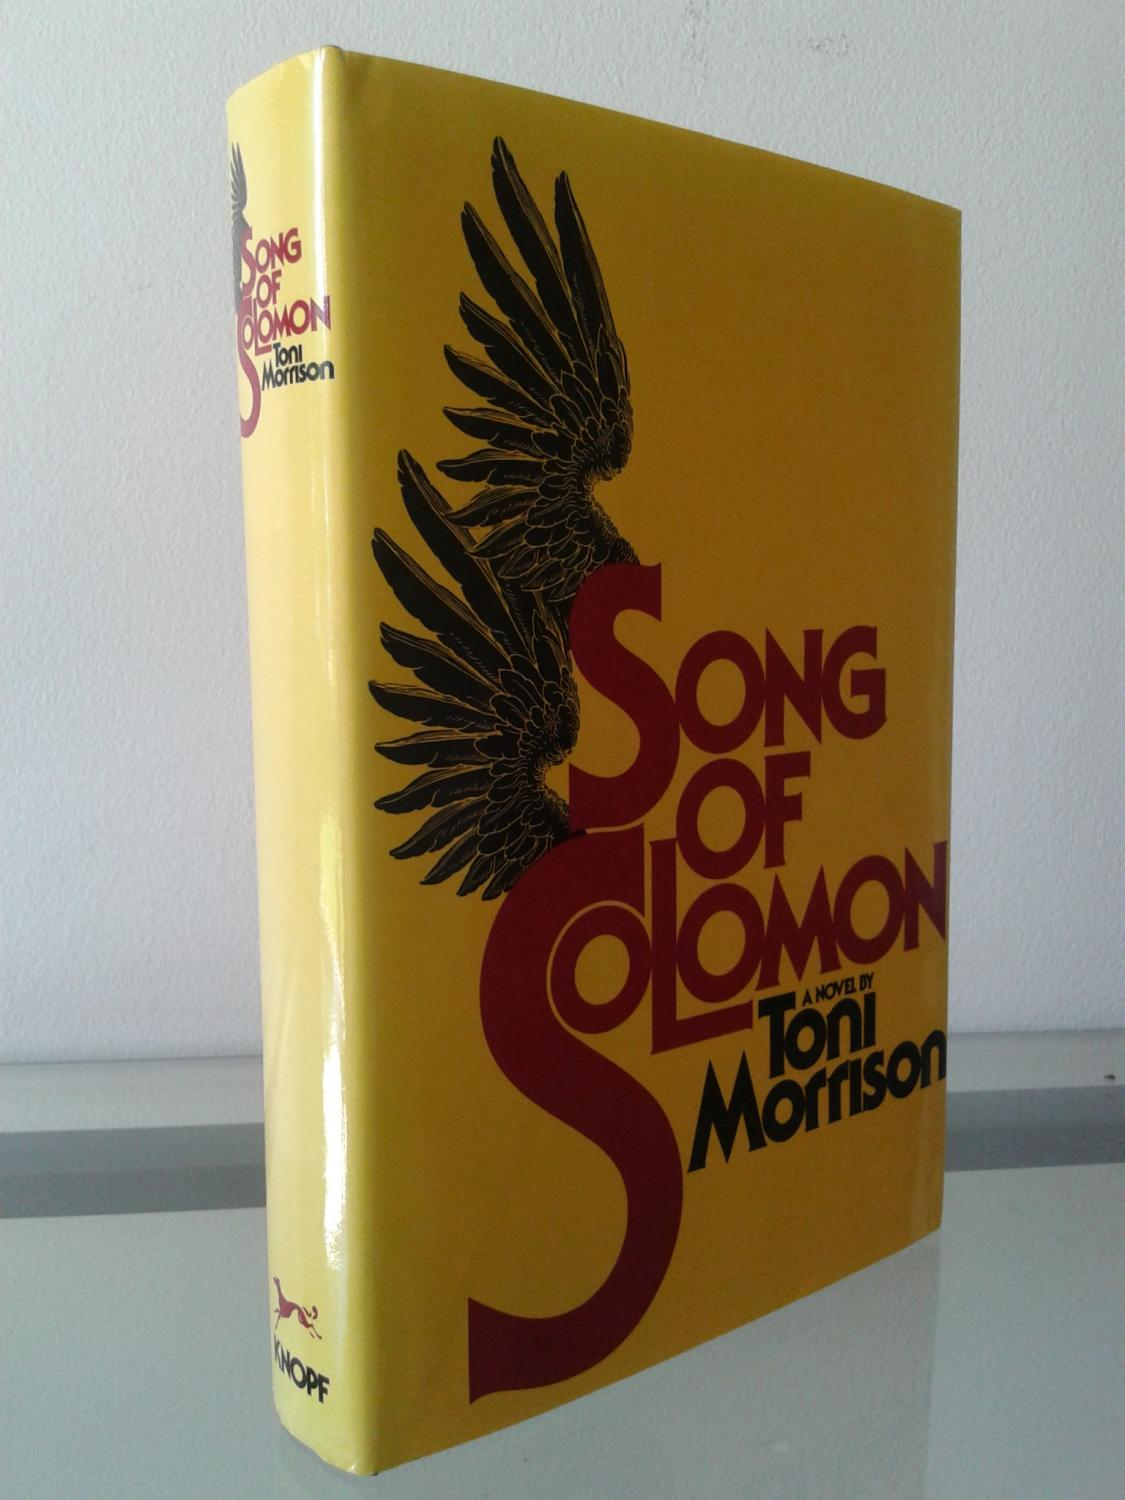 research paper song solomon toni morrison Free research that covers introduction toni morrison's songs of solomon was written and published in 1977, and is considered an iconic part of literature among students, as it has a uniq.